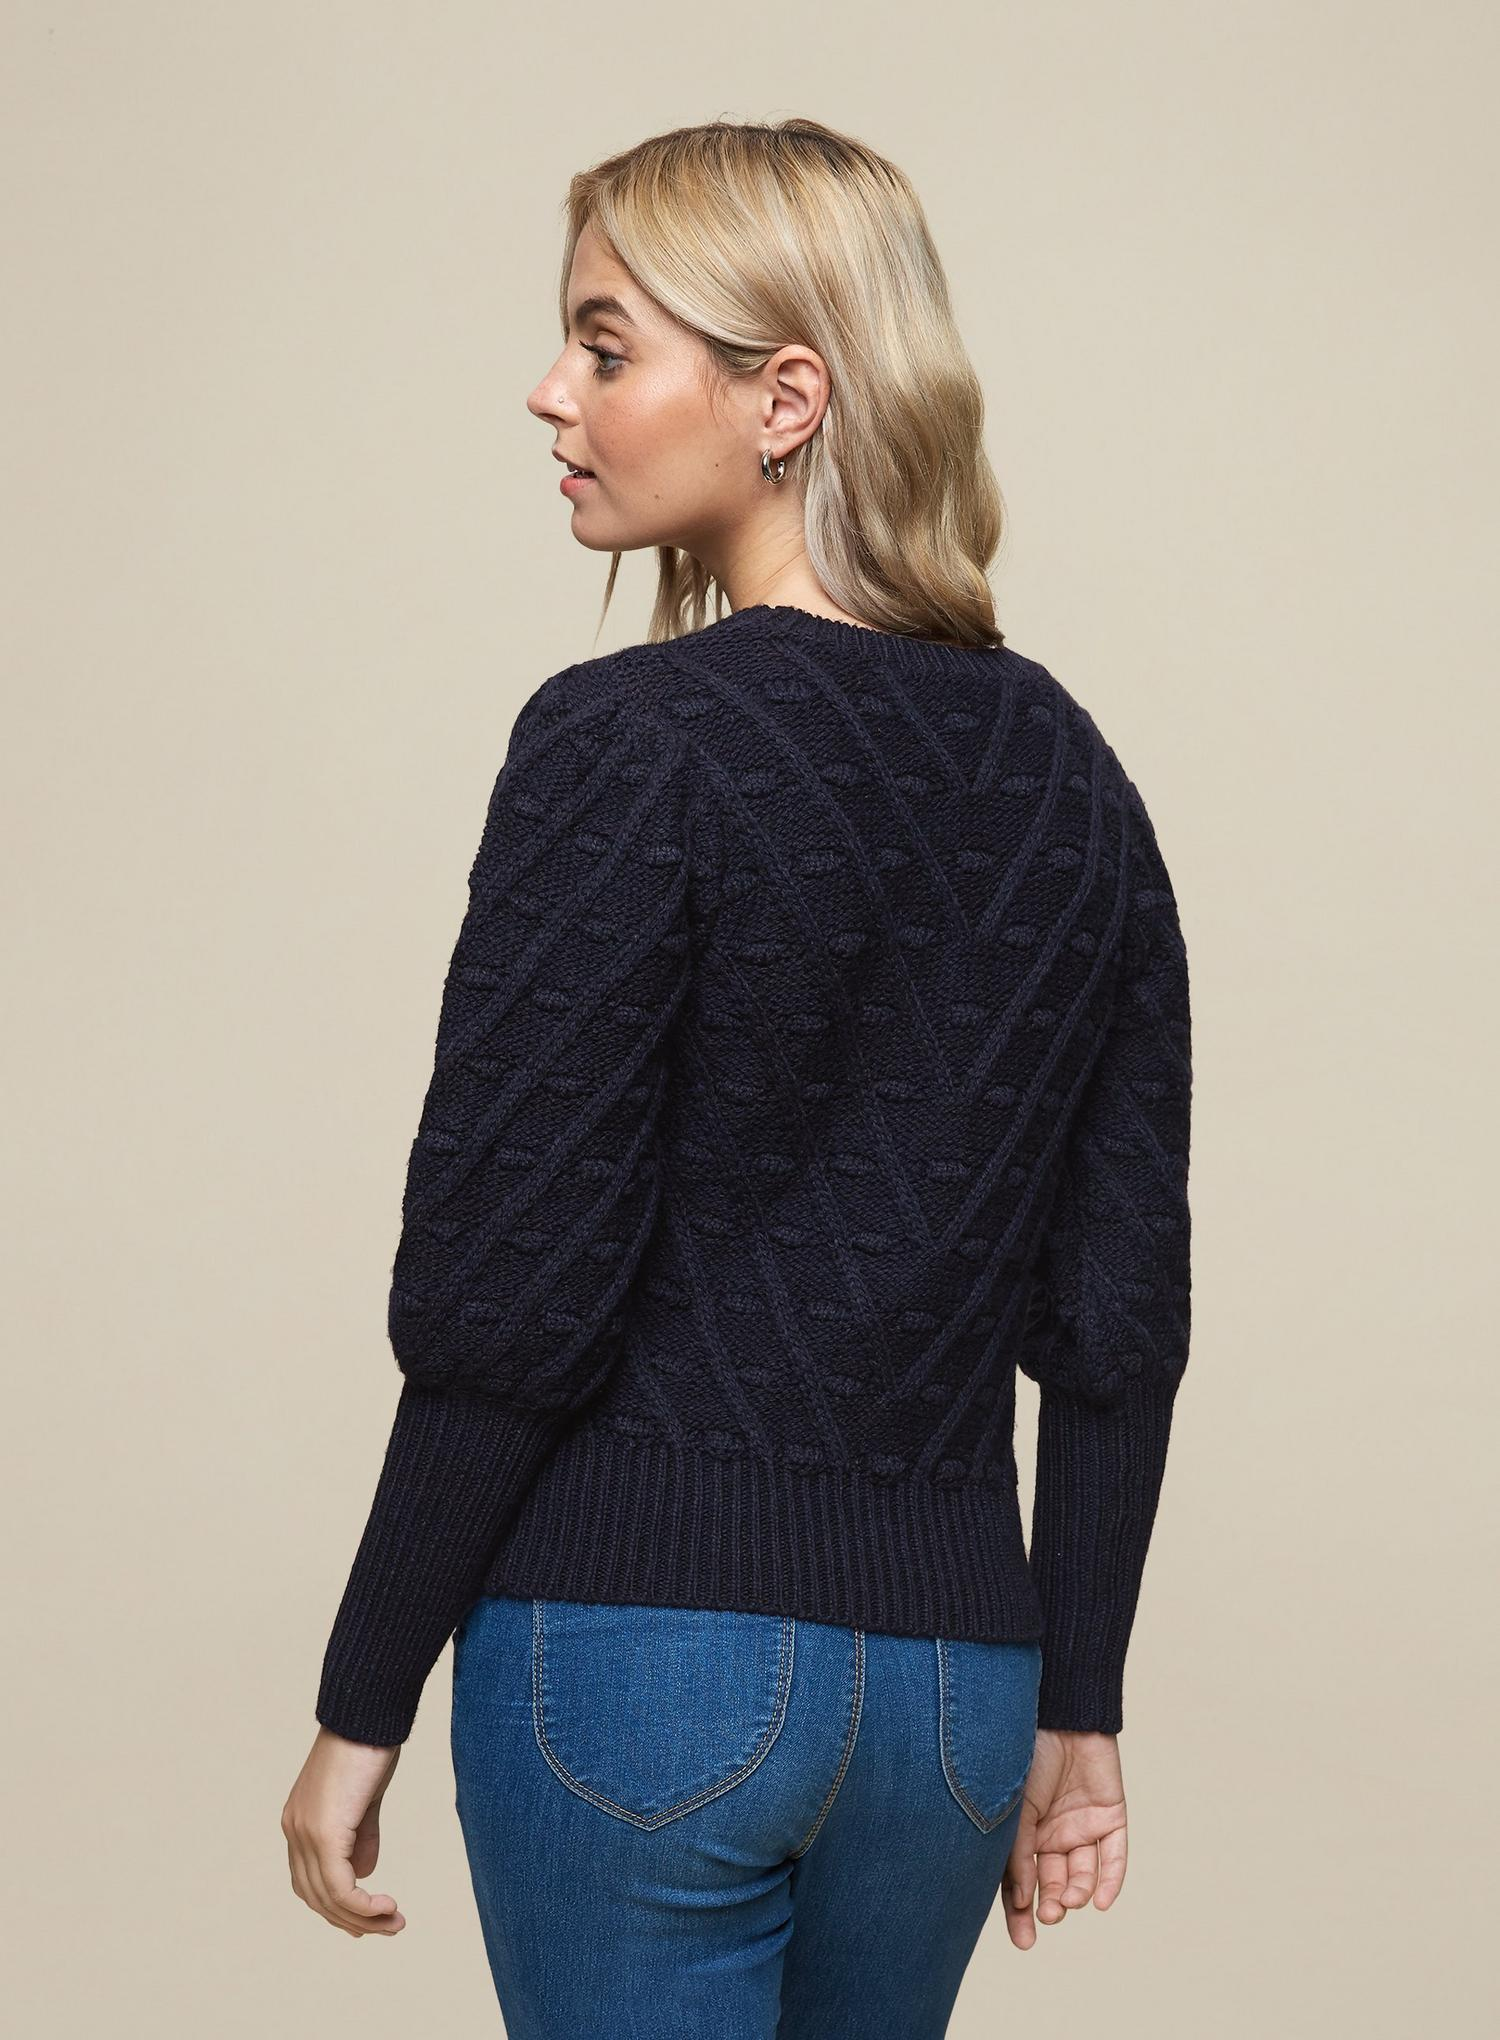 148 DP Petite Navy Blue Bobble Jumper image number 2